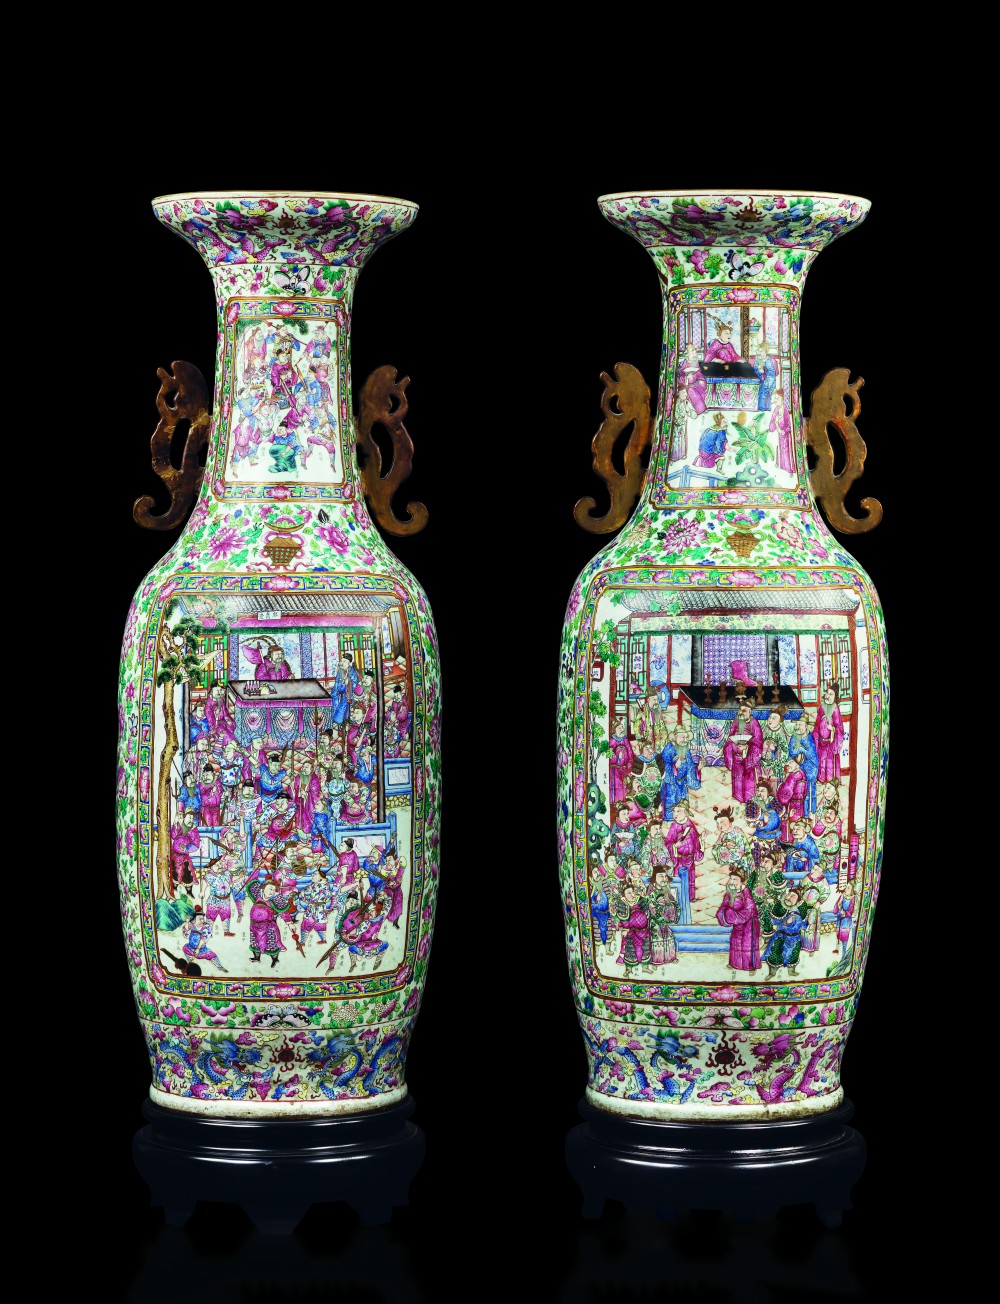 Pair of double-handled Pink Family porcelain vases. Bild: Cambi